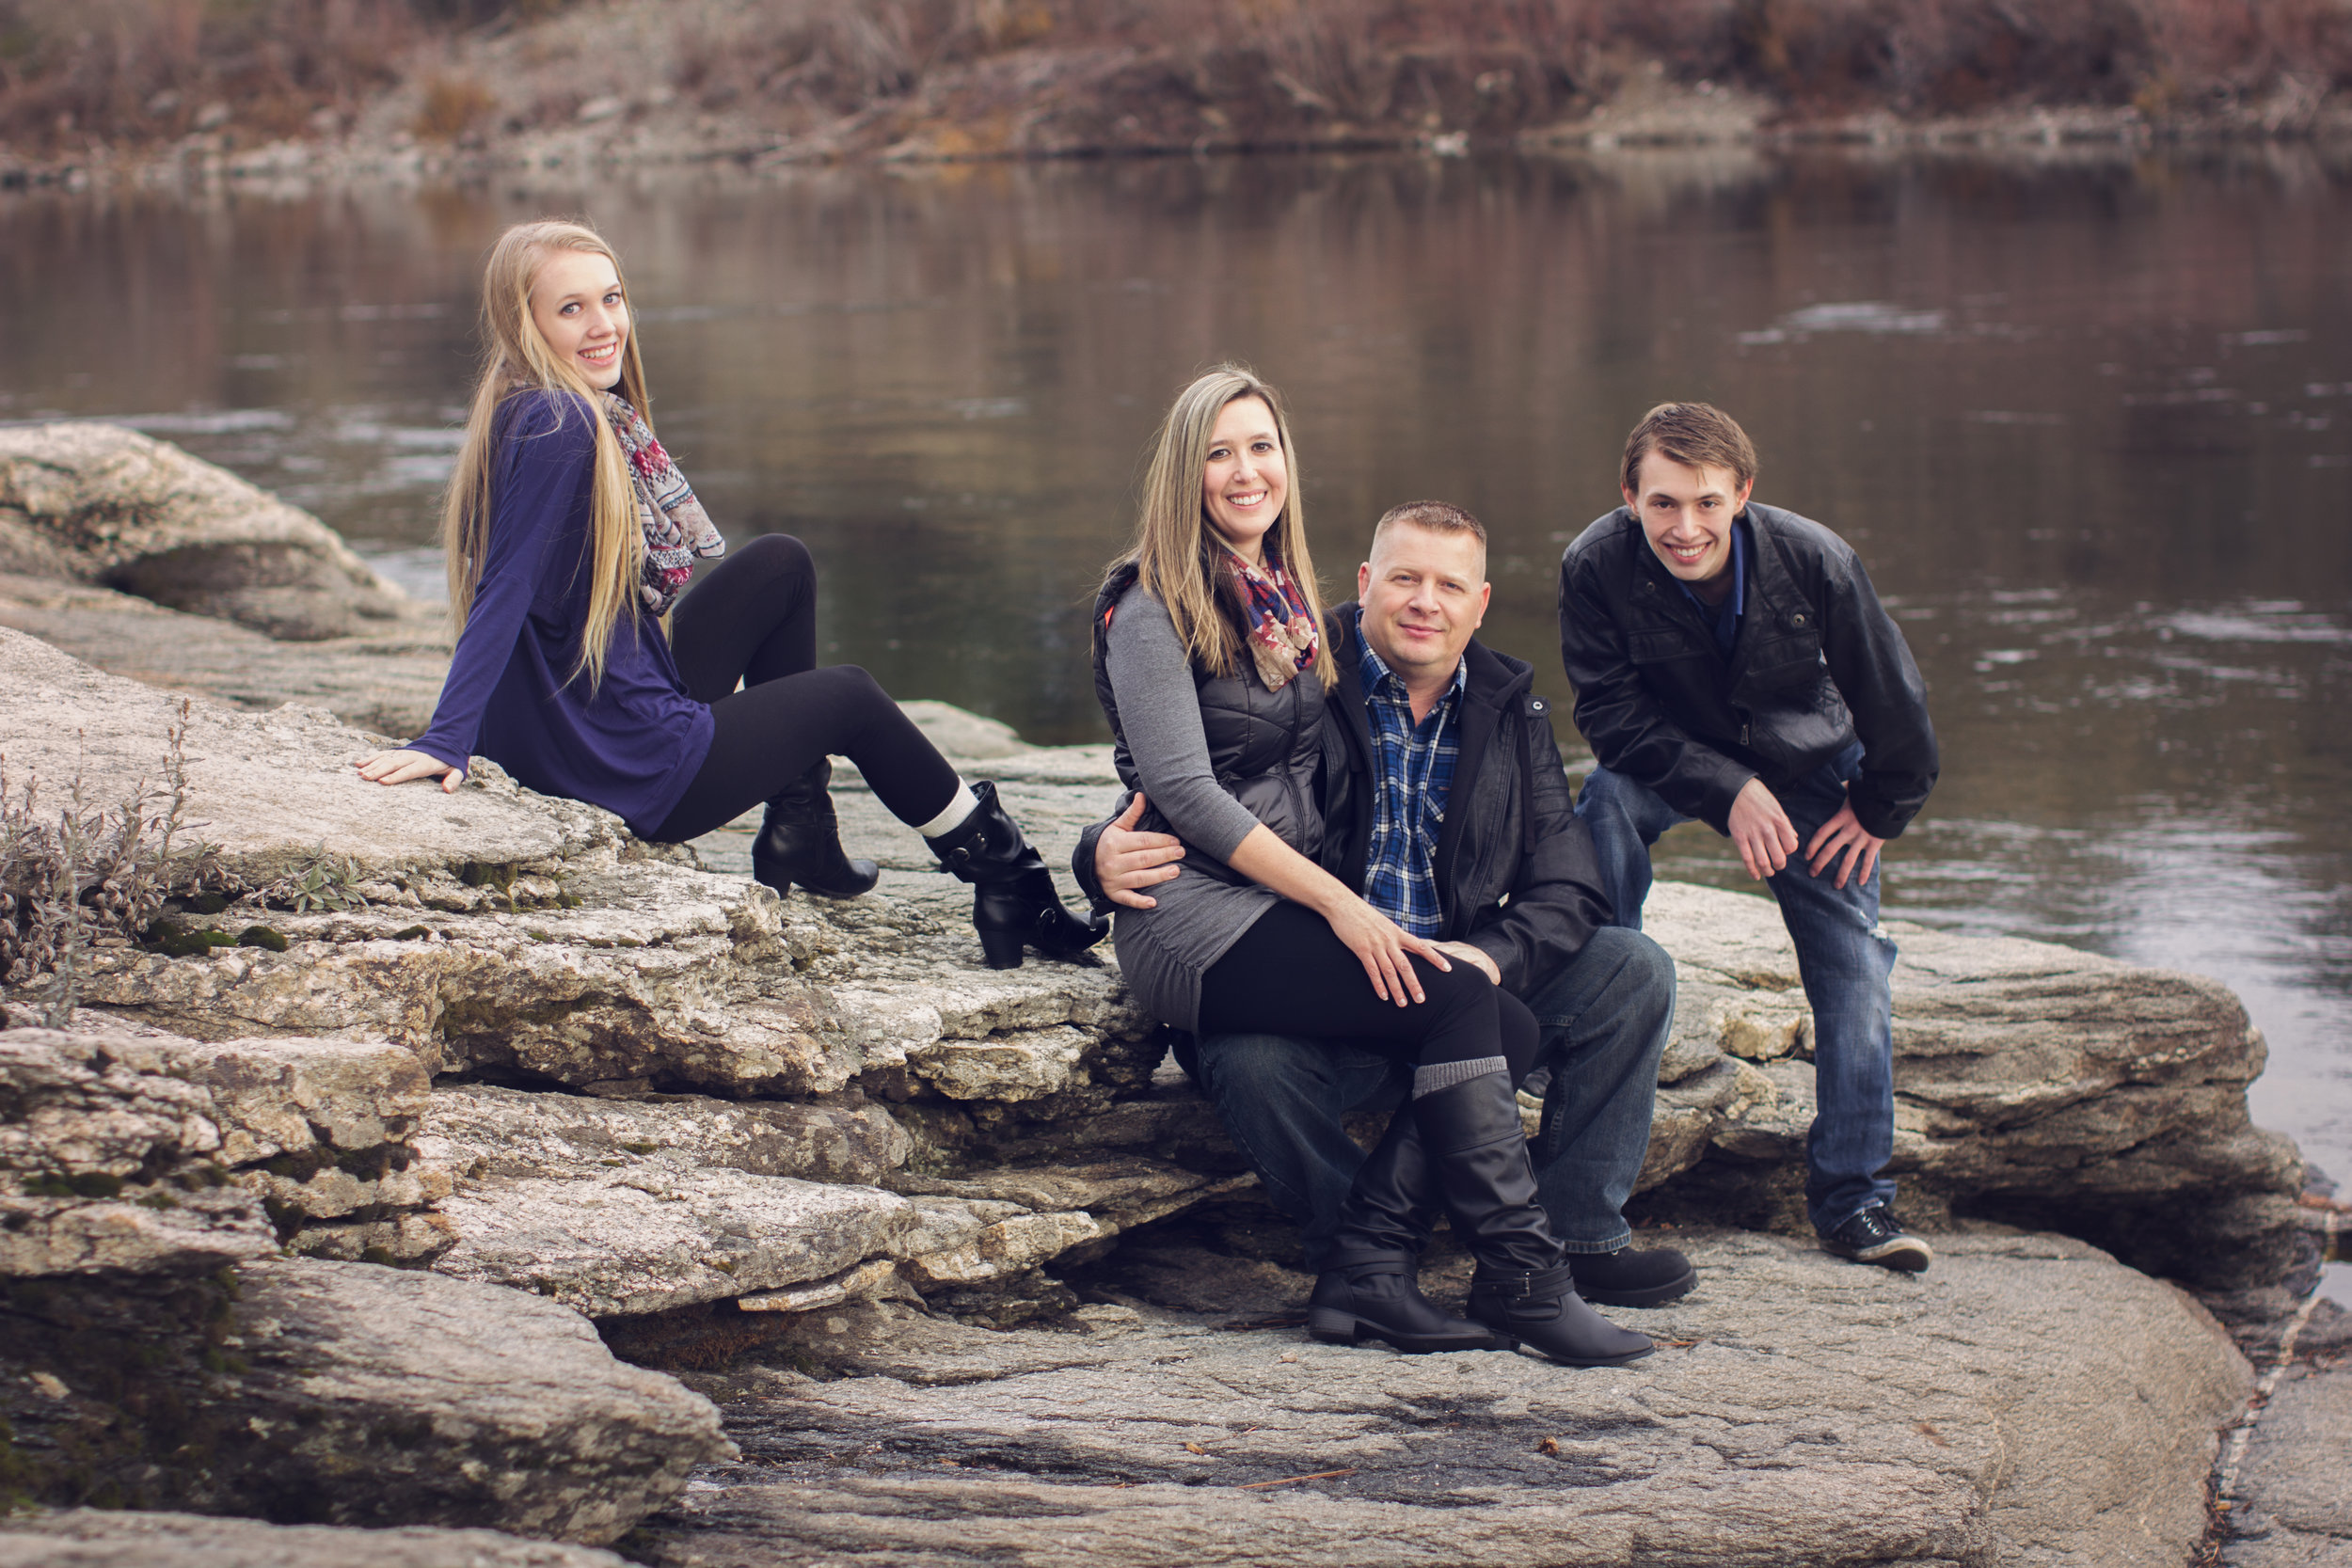 """""""Emily did our family pictures and they were awesome! I wanted them as Christmas gifts and put in a request to have pictures taken in November. Emily had them back to me in plenty of time to have them printed and wrapped for Christmas. The pictures were a hit with every family member.""""  -Erica S."""